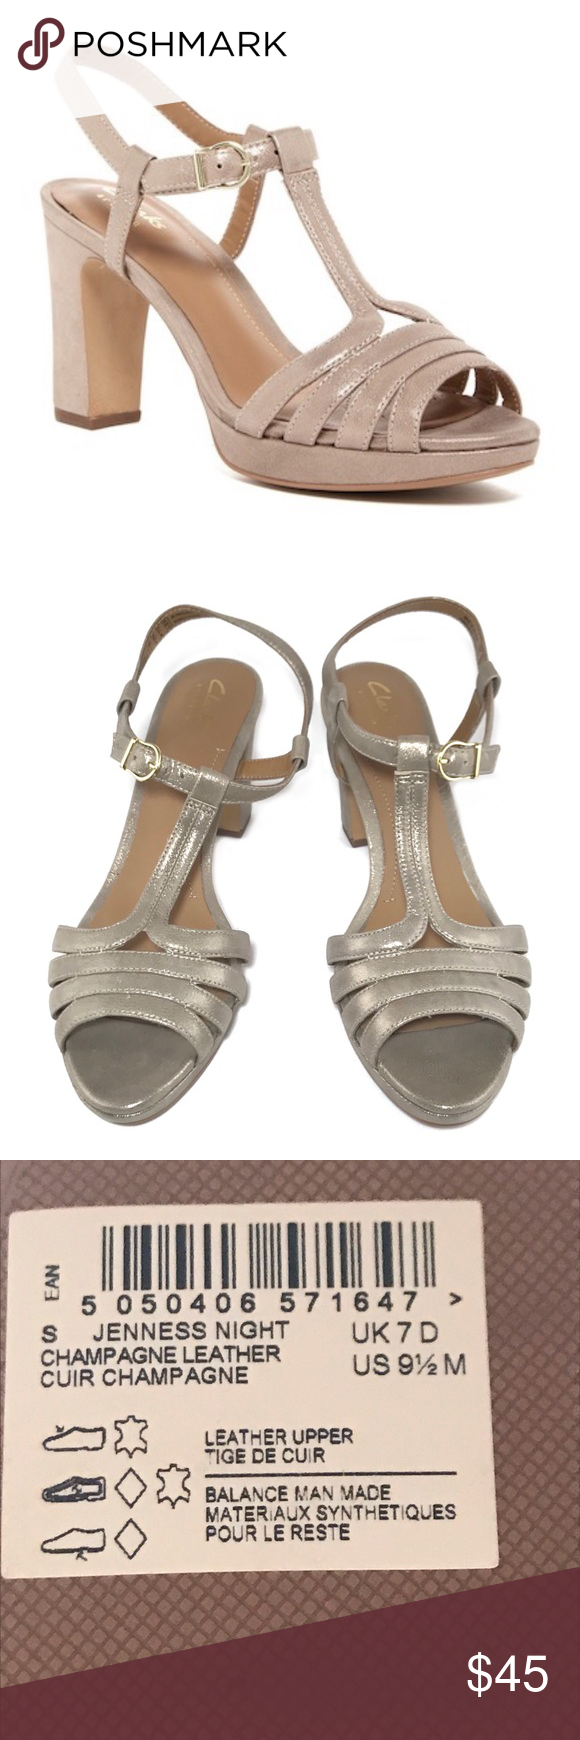 1b210ecc8ad3  clarks  Jenness night heel sandal Shimmery champagne colored heels are new  without box. Chunky heel and adjustable ankle strap. Leather uppers.